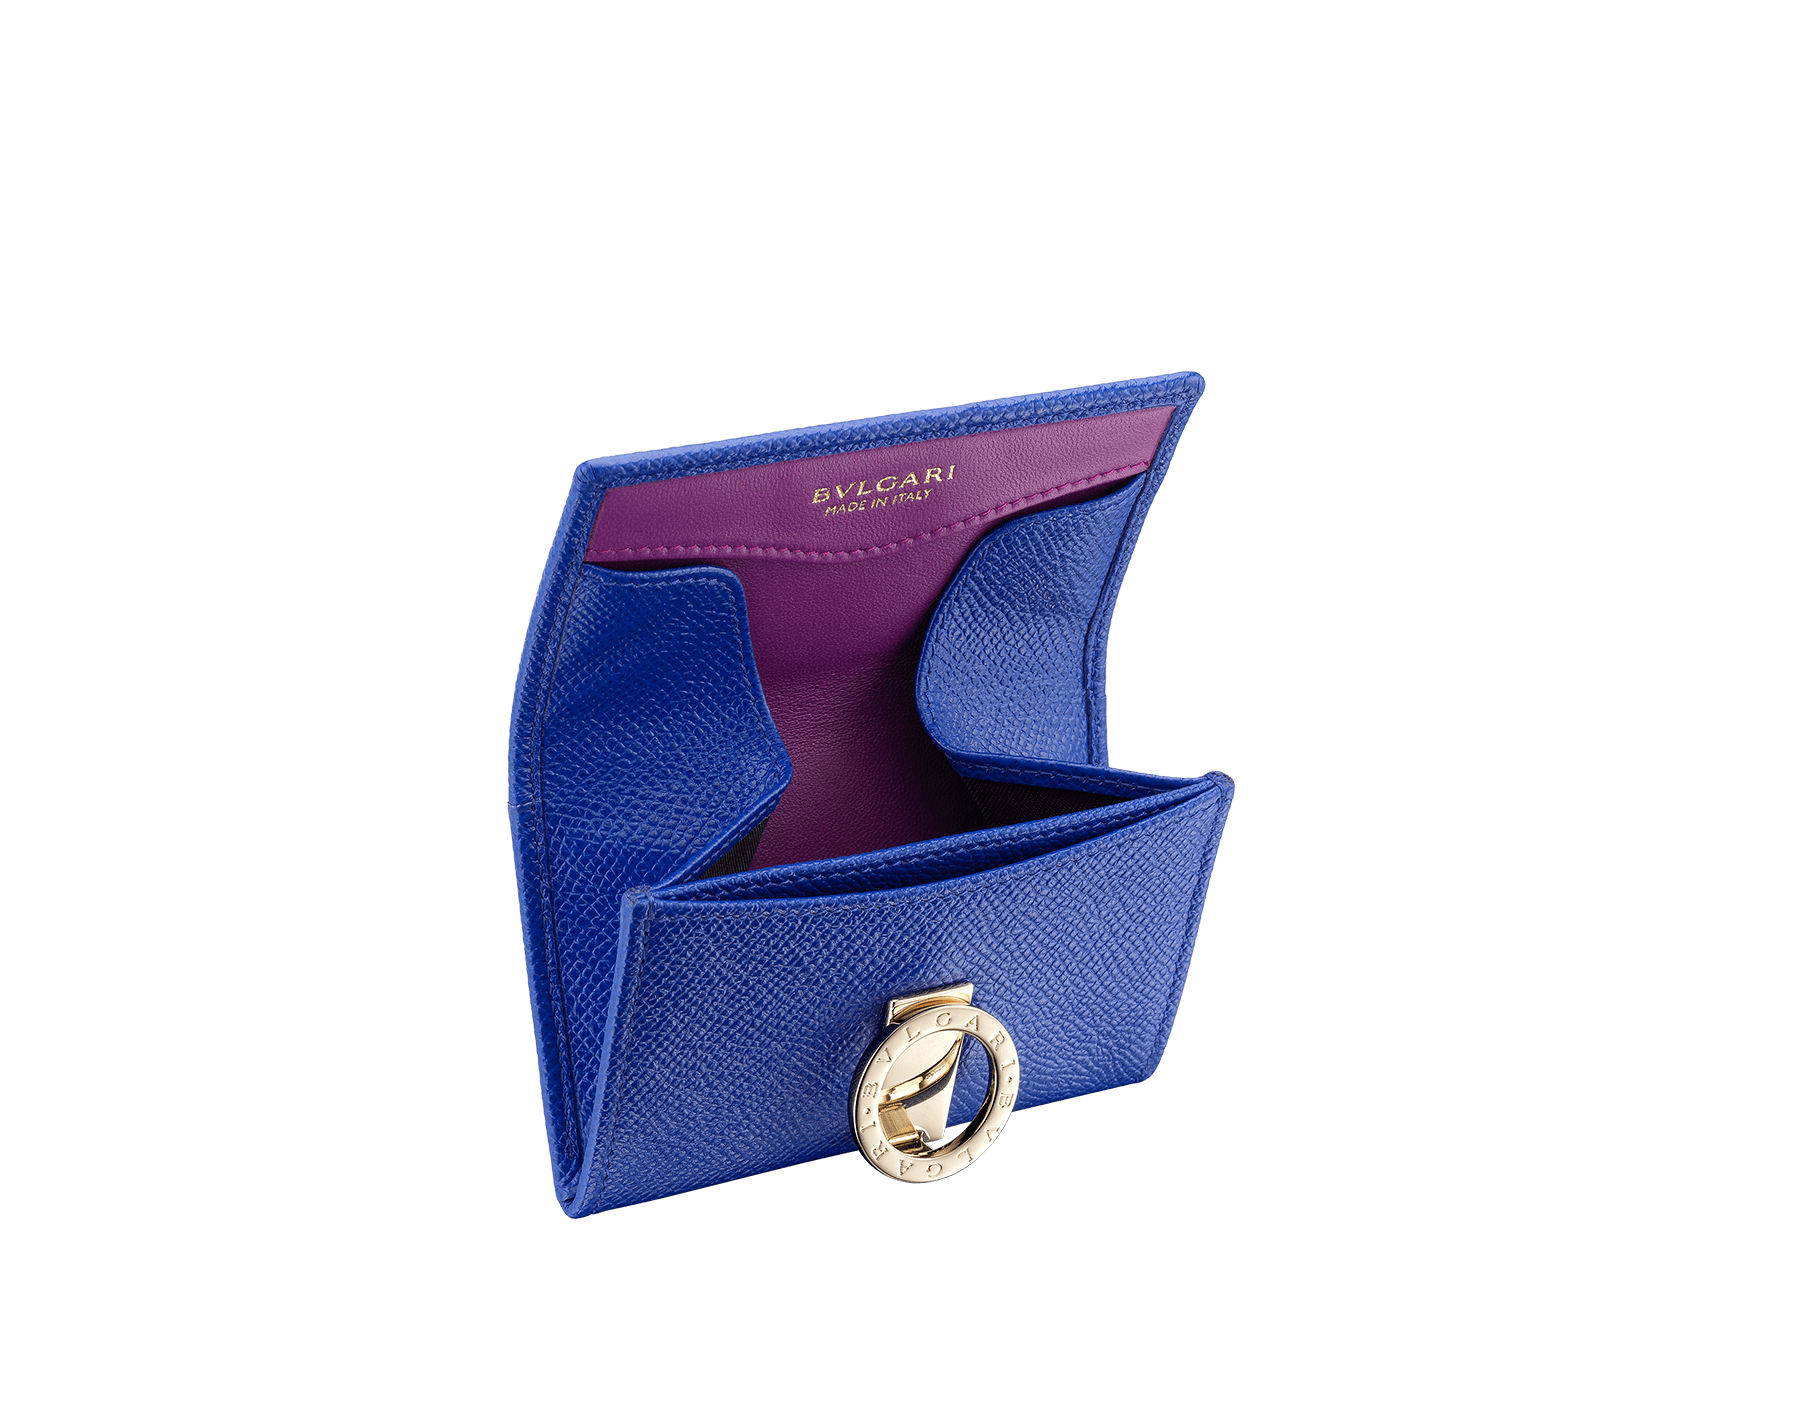 BVLGARI BVLGARI coin purse in cobalt tourmaline grain calf leather and aster amethyst nappa leather. Iconic logo closure clip in light gold plated brass 287493 image 2